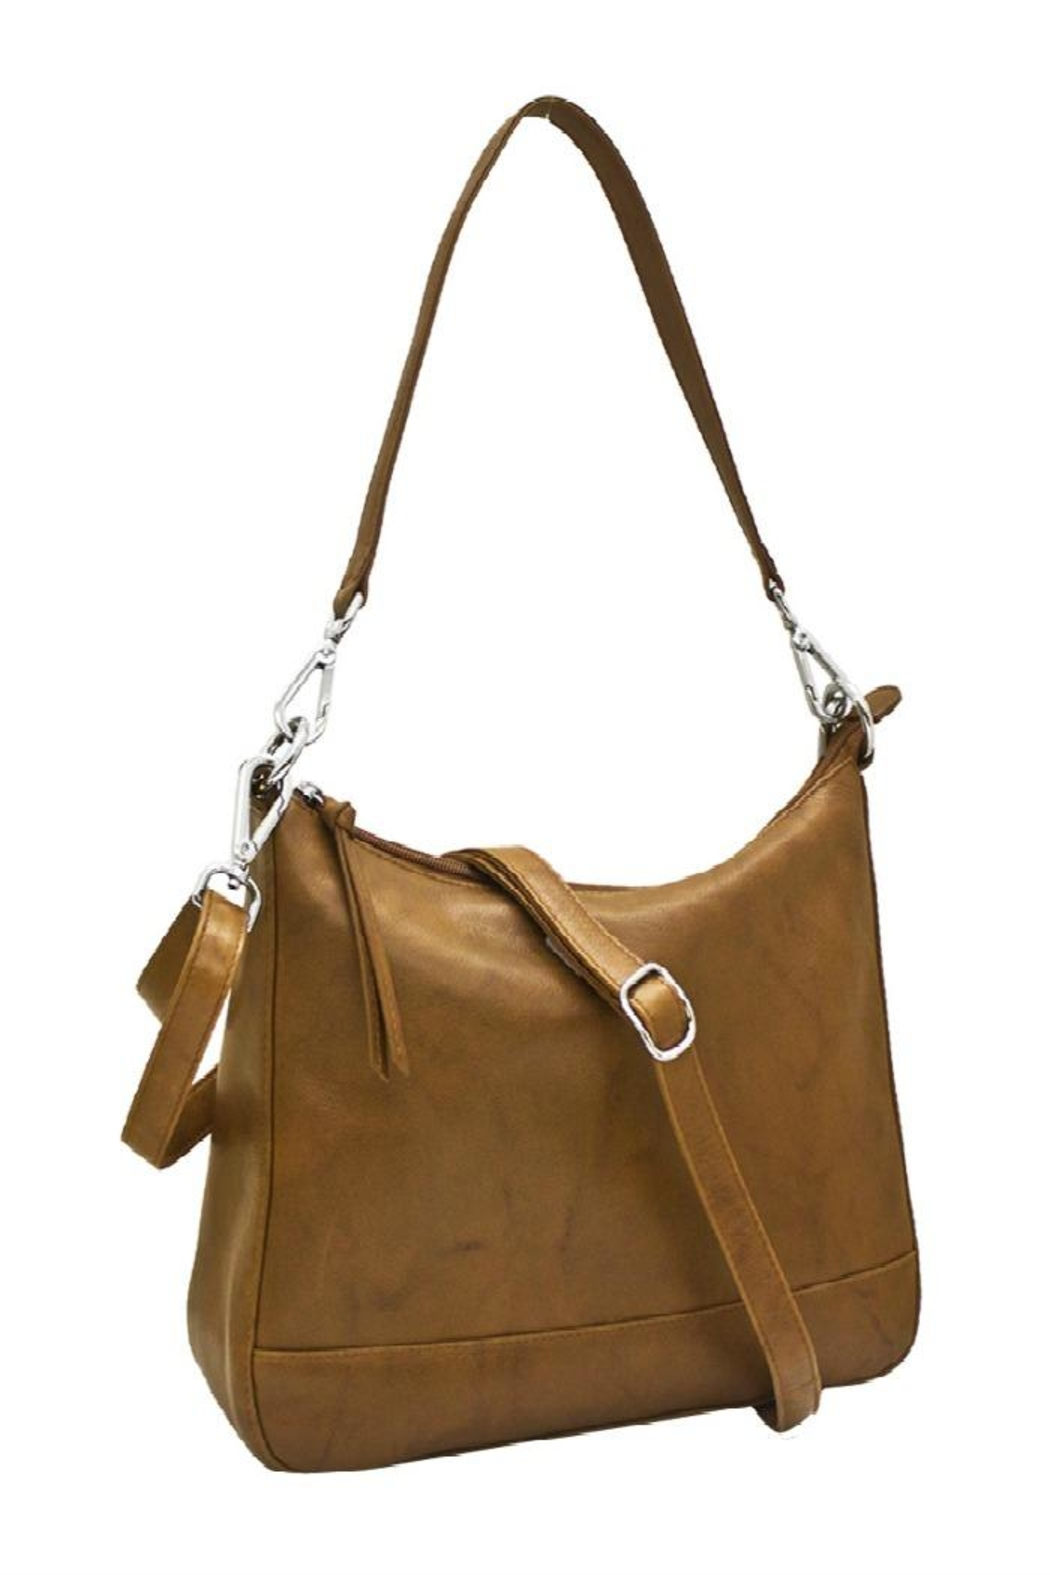 ili world Tan Convertible Hobo - Front Cropped Image